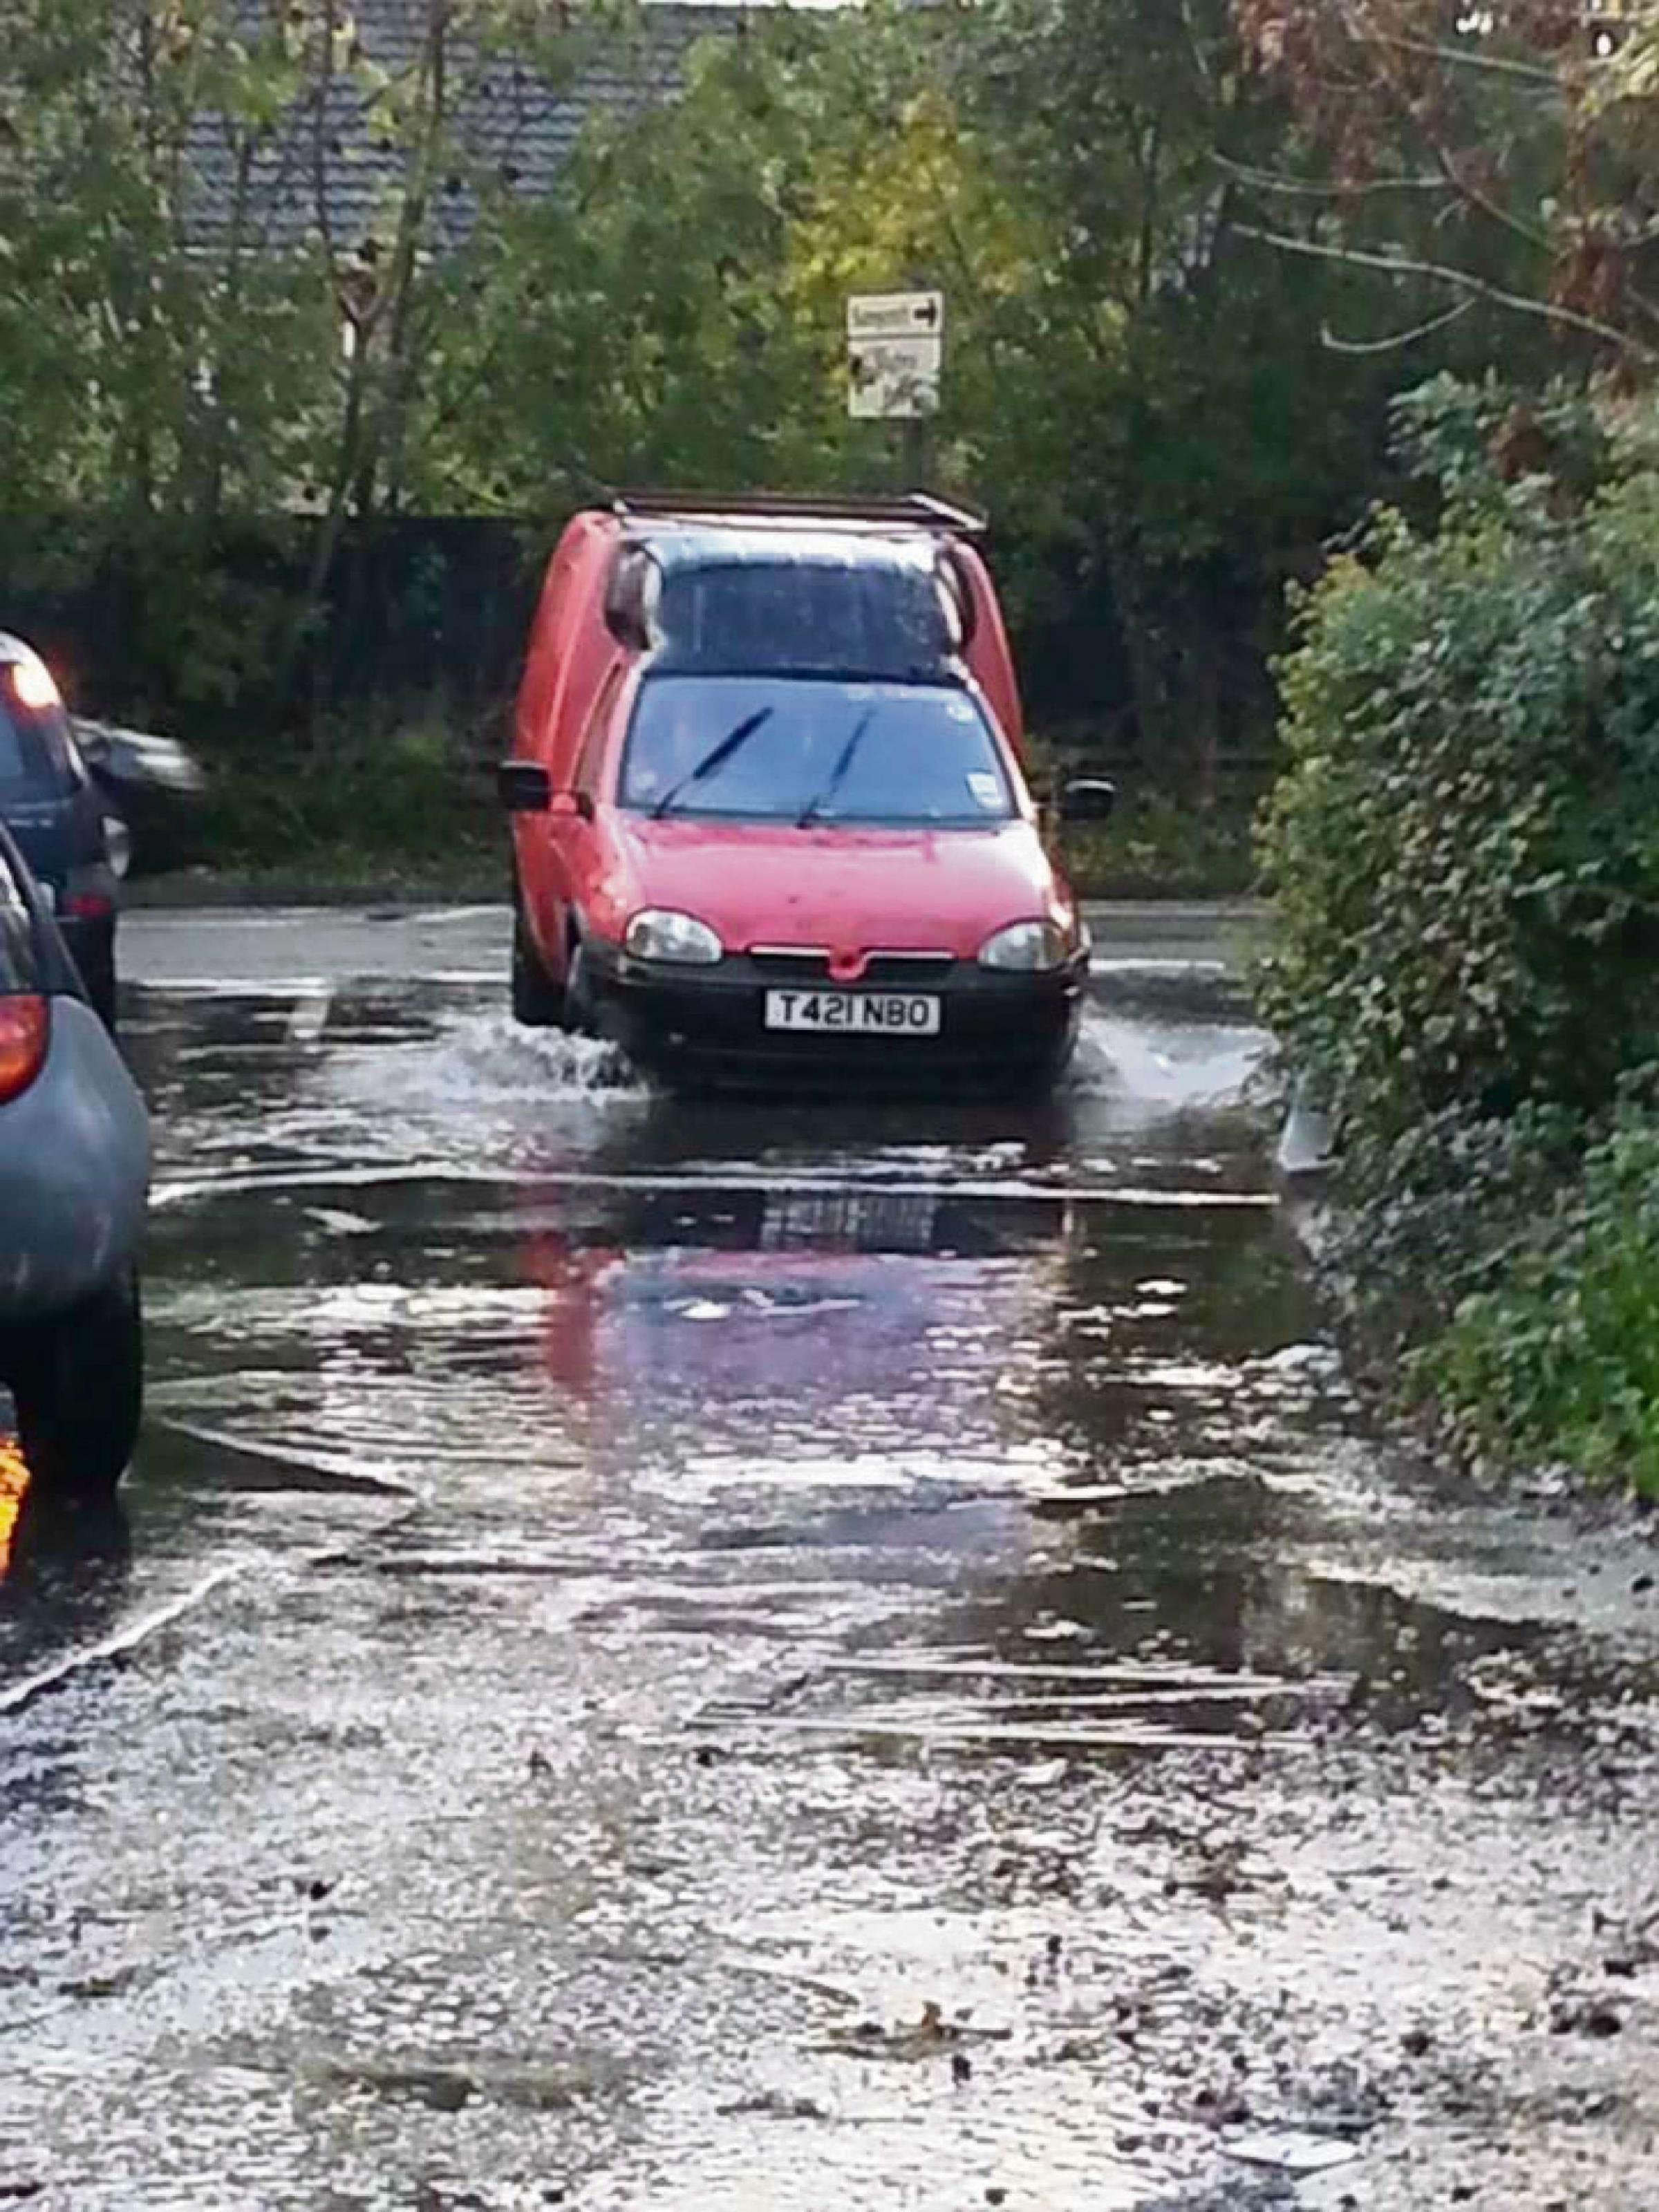 Drivers warned to take extra care on wet roads this weekend